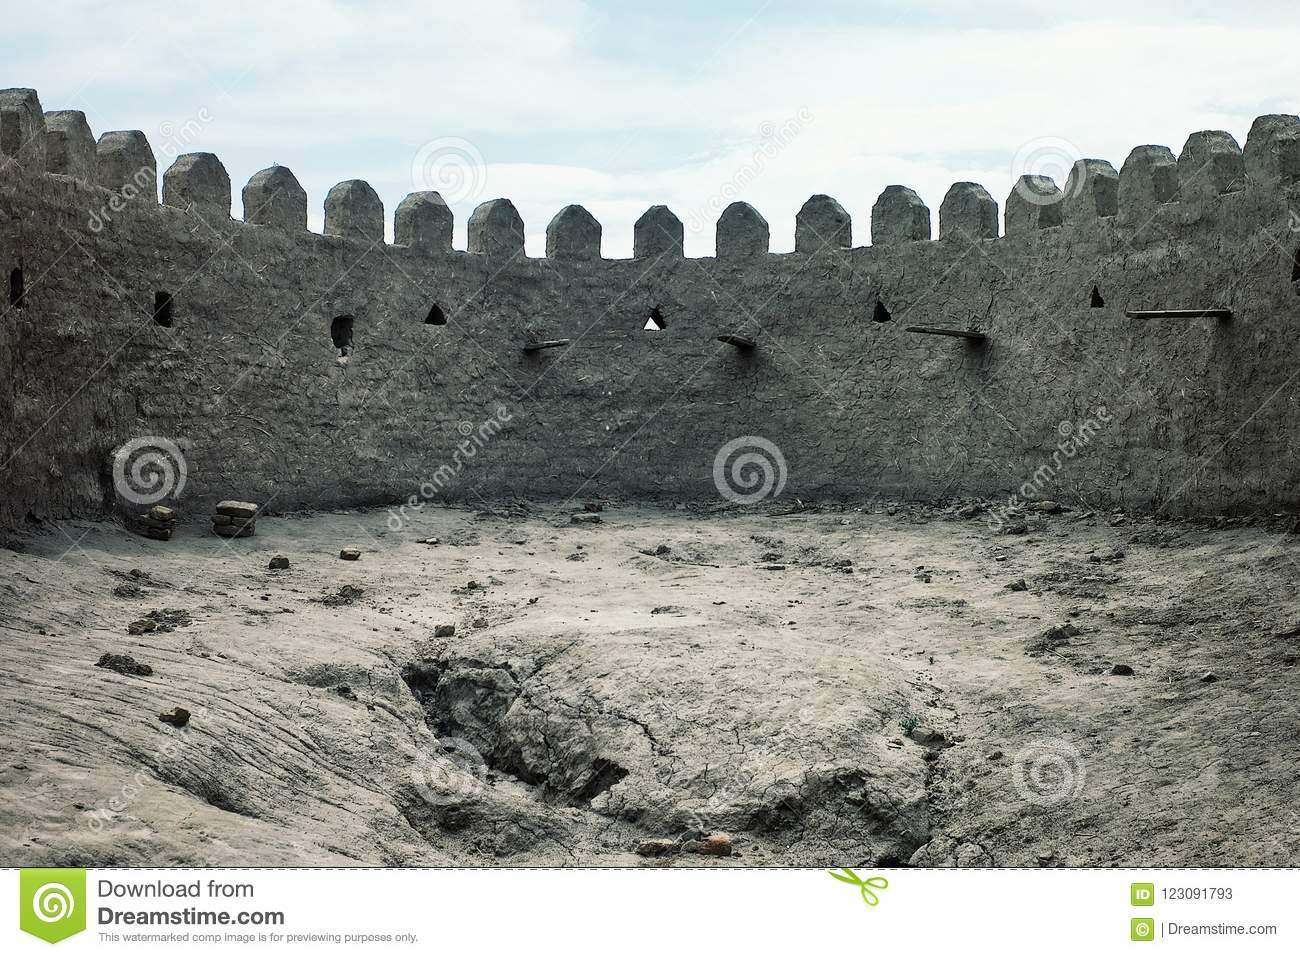 World heritage unesco site of the famous mud brick clay walls of the ancient silk road gateway ci